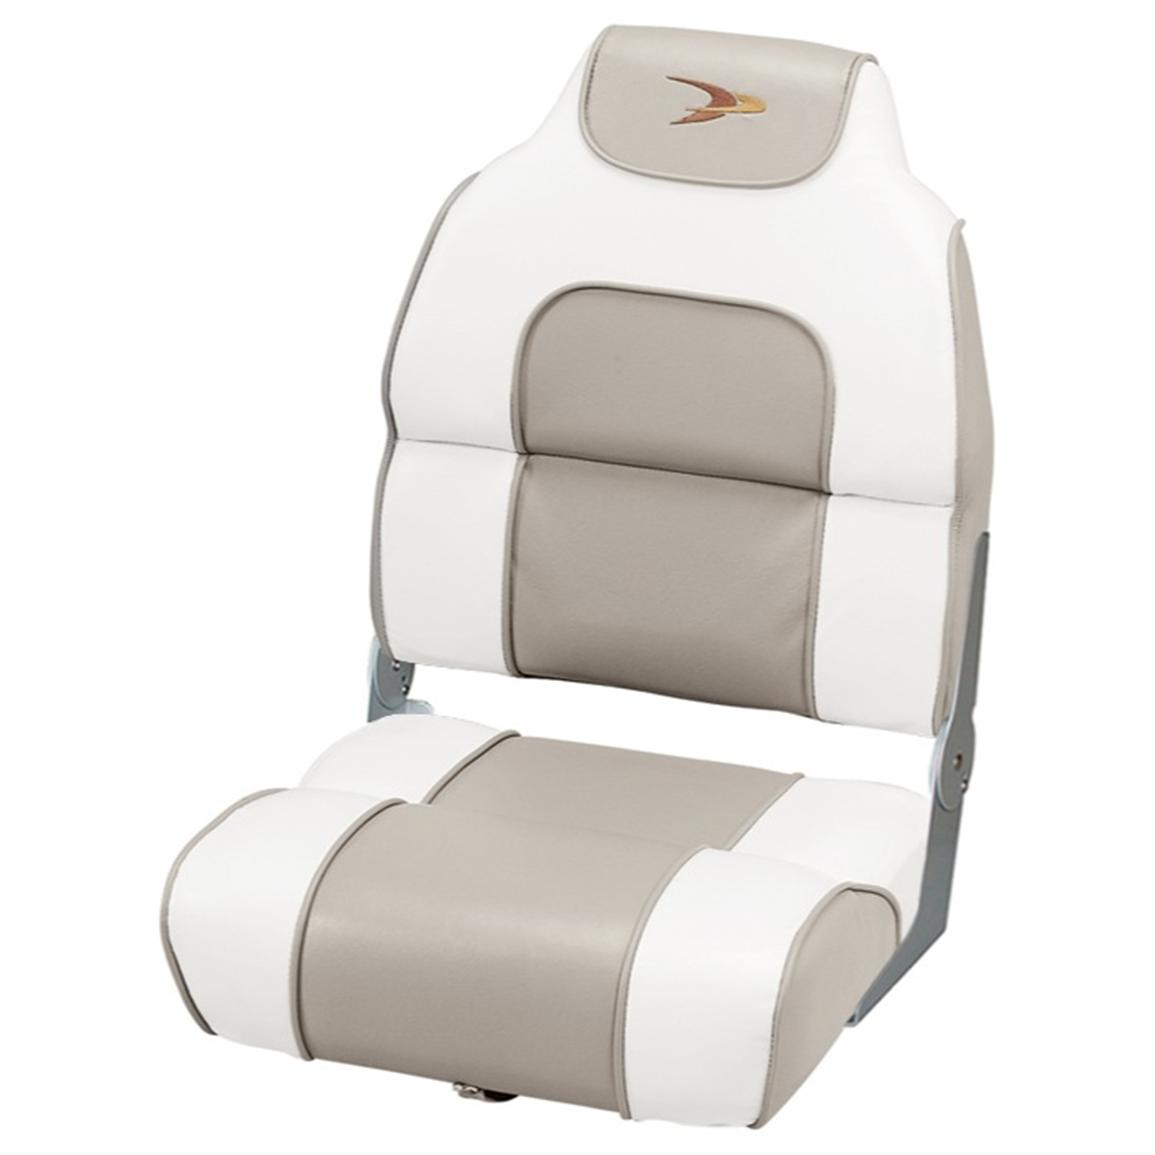 Wise® Premium Deluxe Hi-back Fishing Boat Seat, White / Khaki